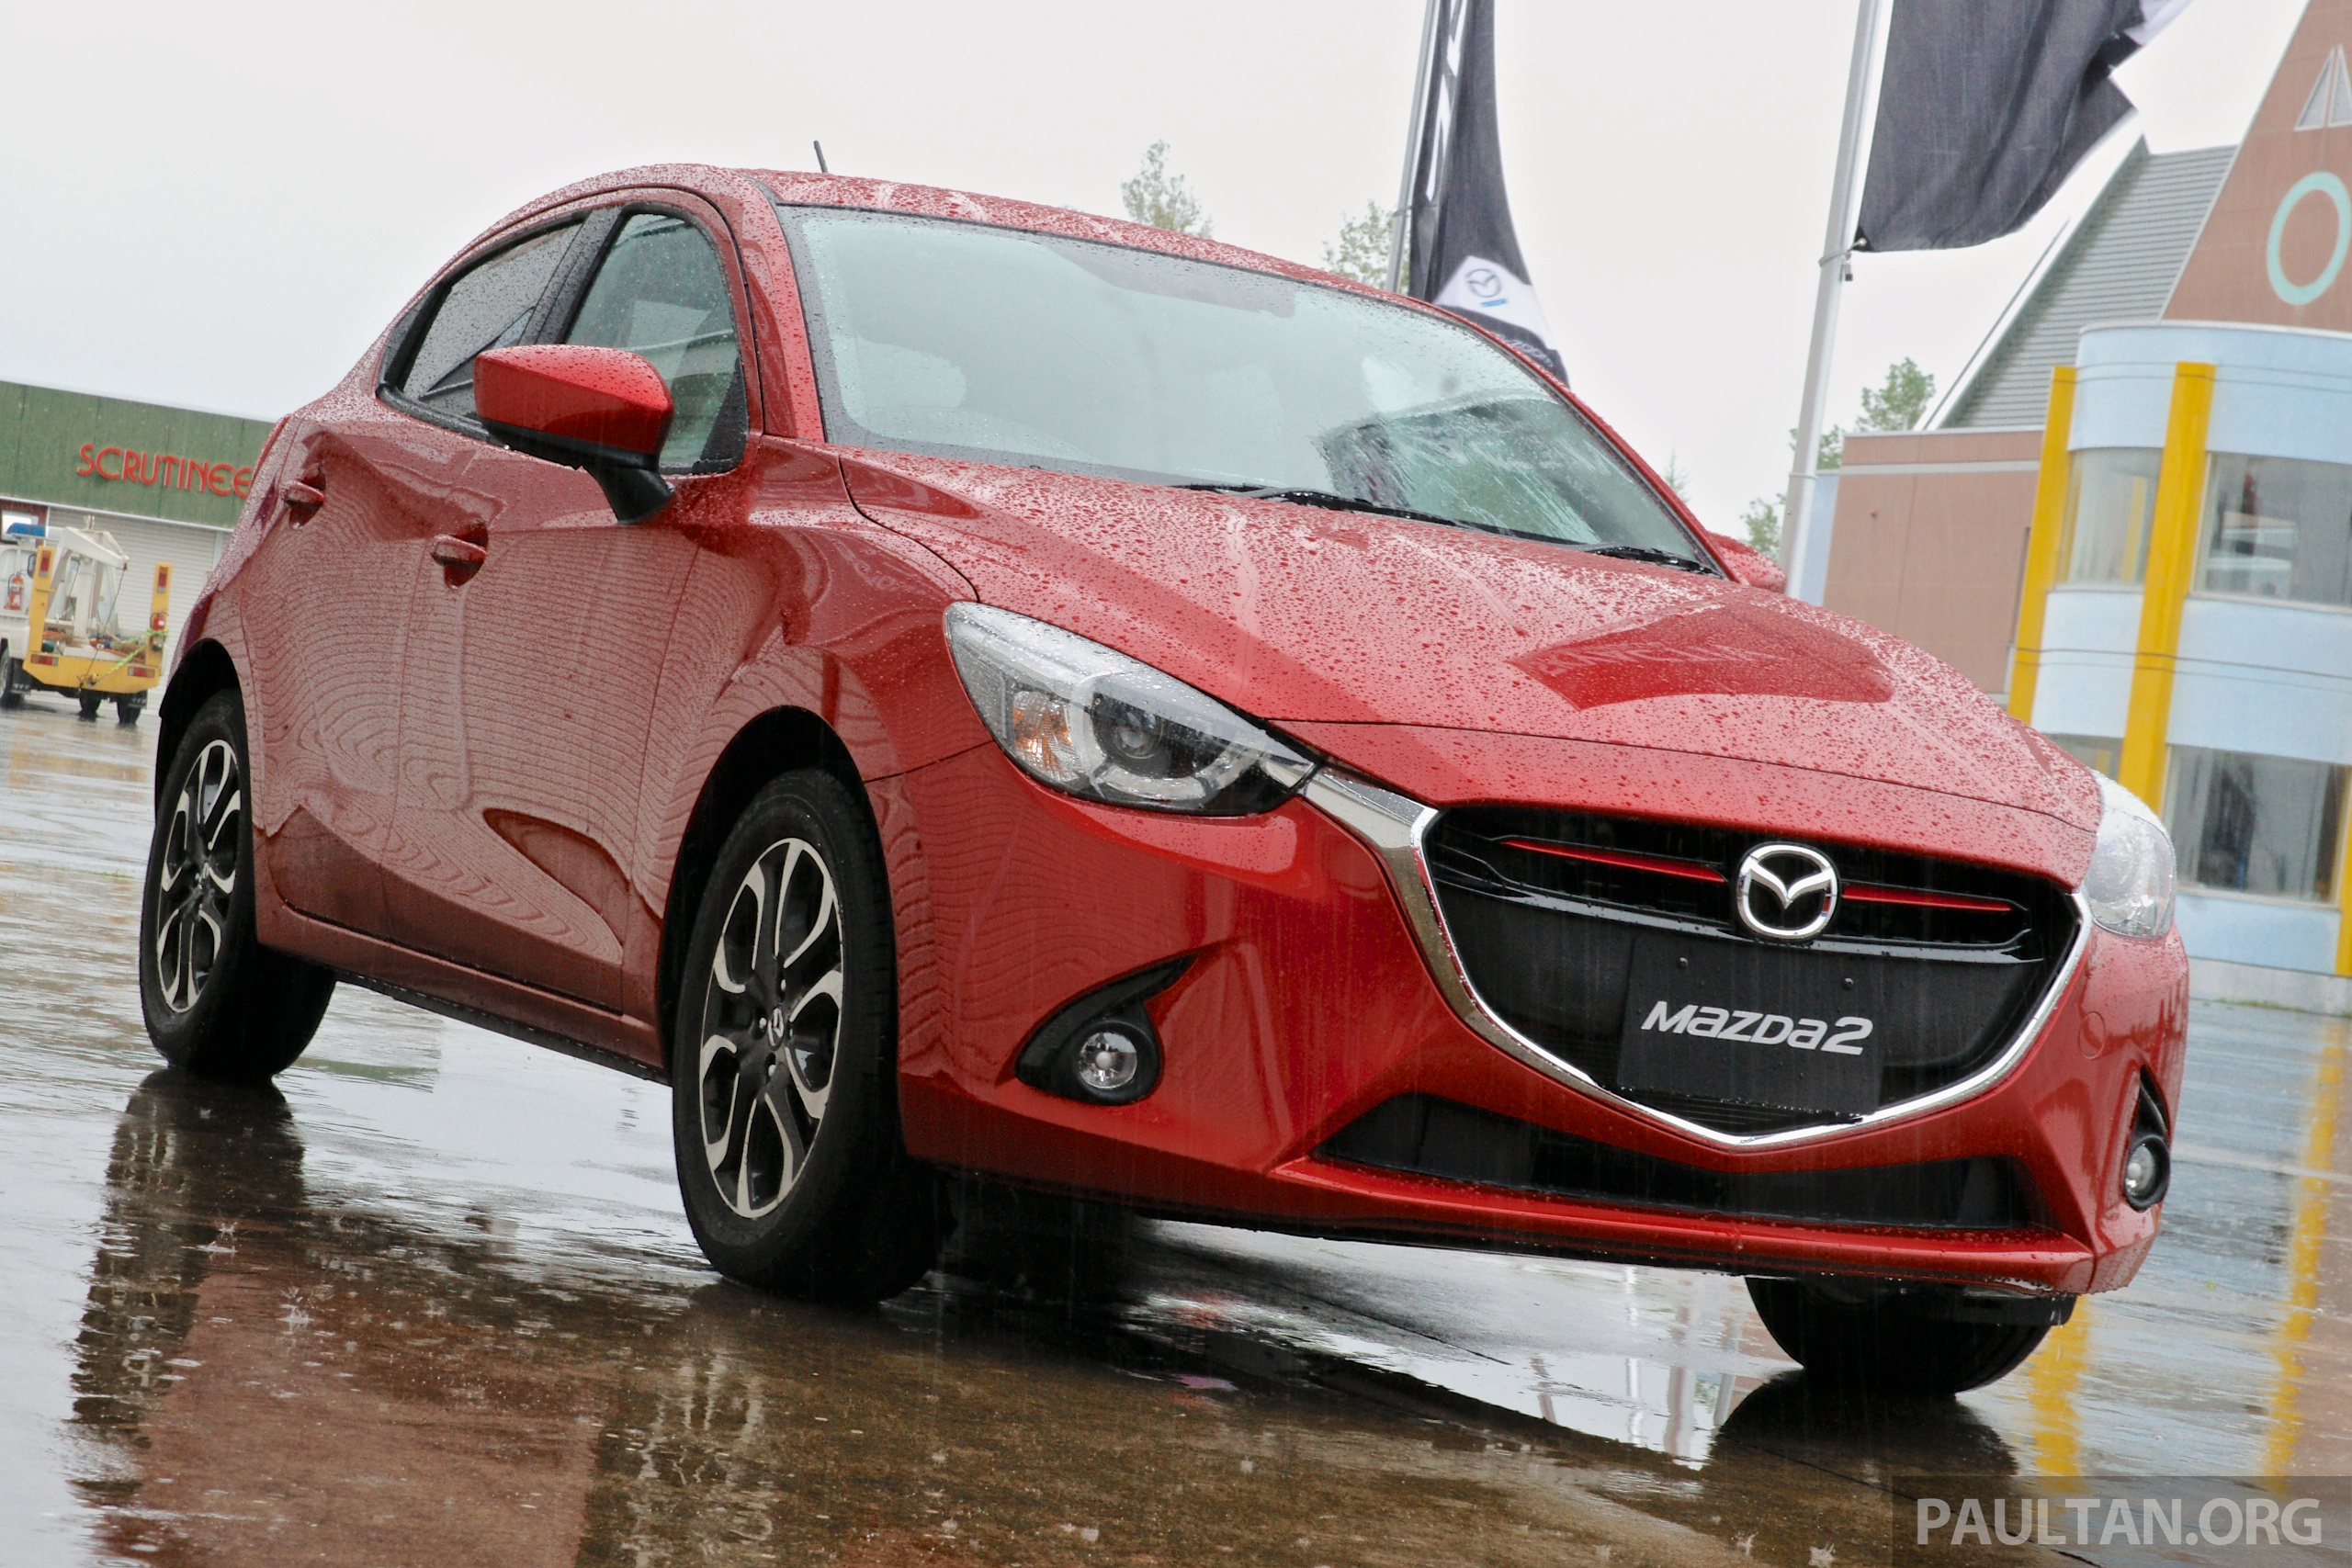 mazda 2 aimed to be priced under rm90k mazda 3 ckd to arrive early 2015 cx 3 expected end 2015. Black Bedroom Furniture Sets. Home Design Ideas